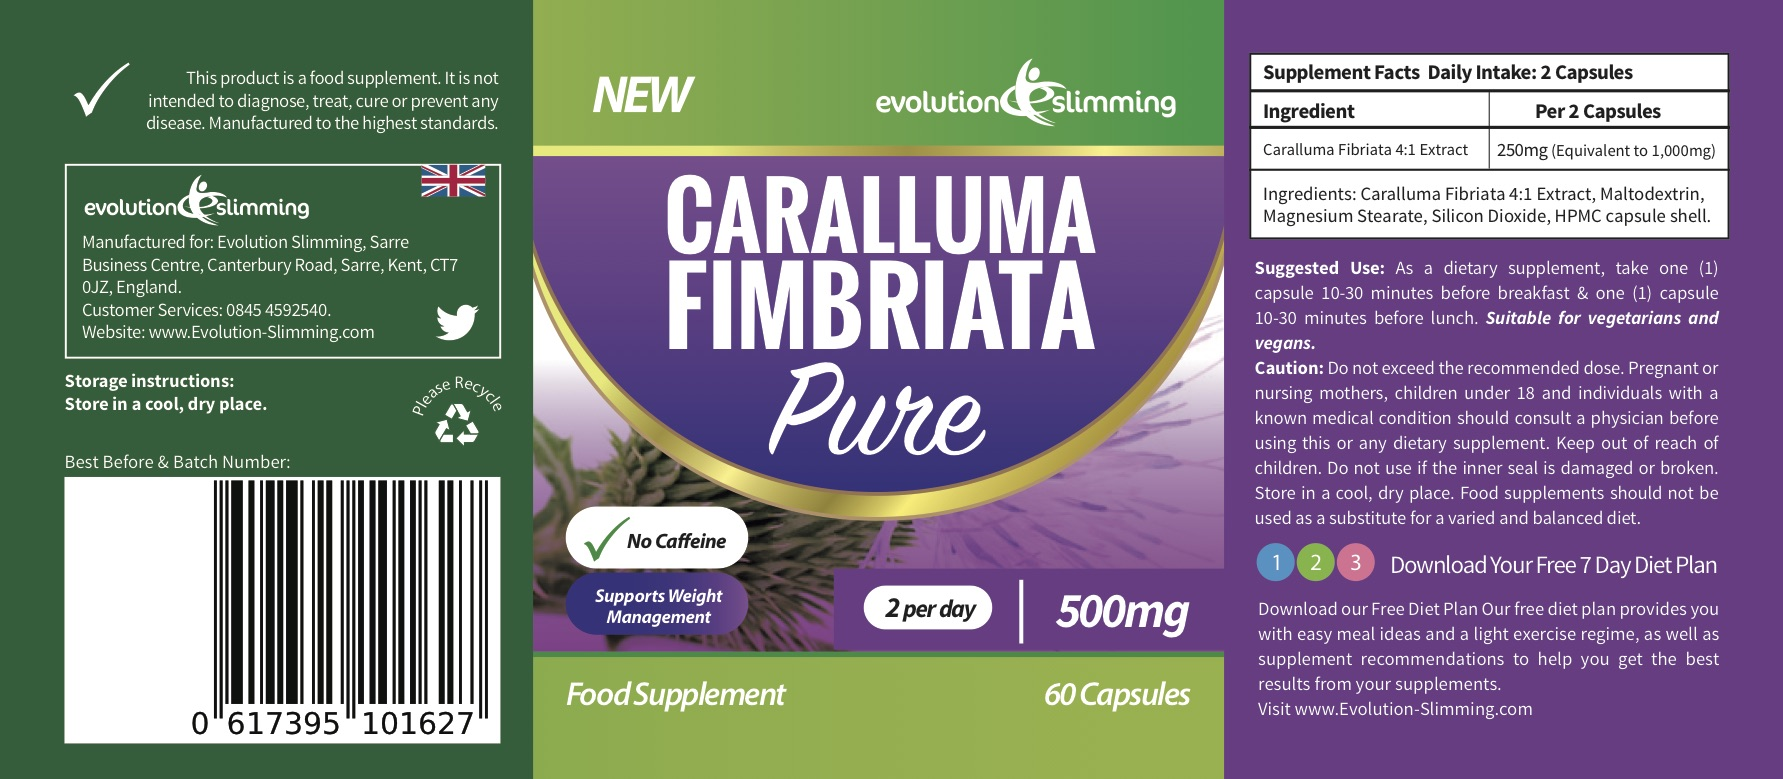 honest weight loss review why caralluma fimbriata is so good